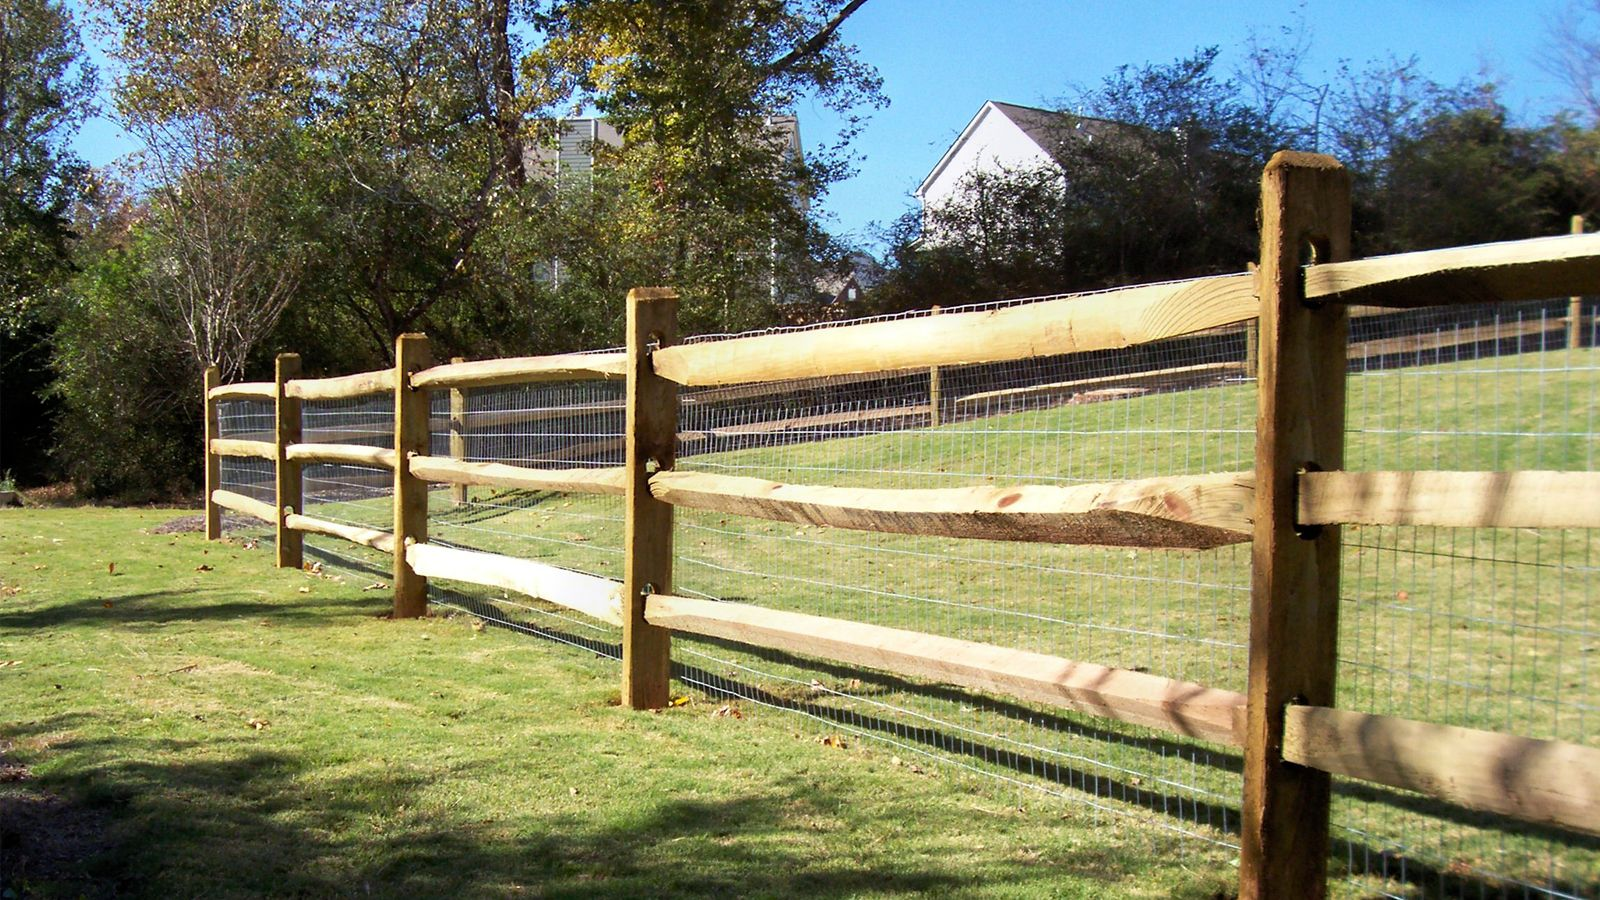 Custom wood horse fence design with wire for added protection custom wood horse fence design with wire for added protection mossy oak fence company baanklon Gallery